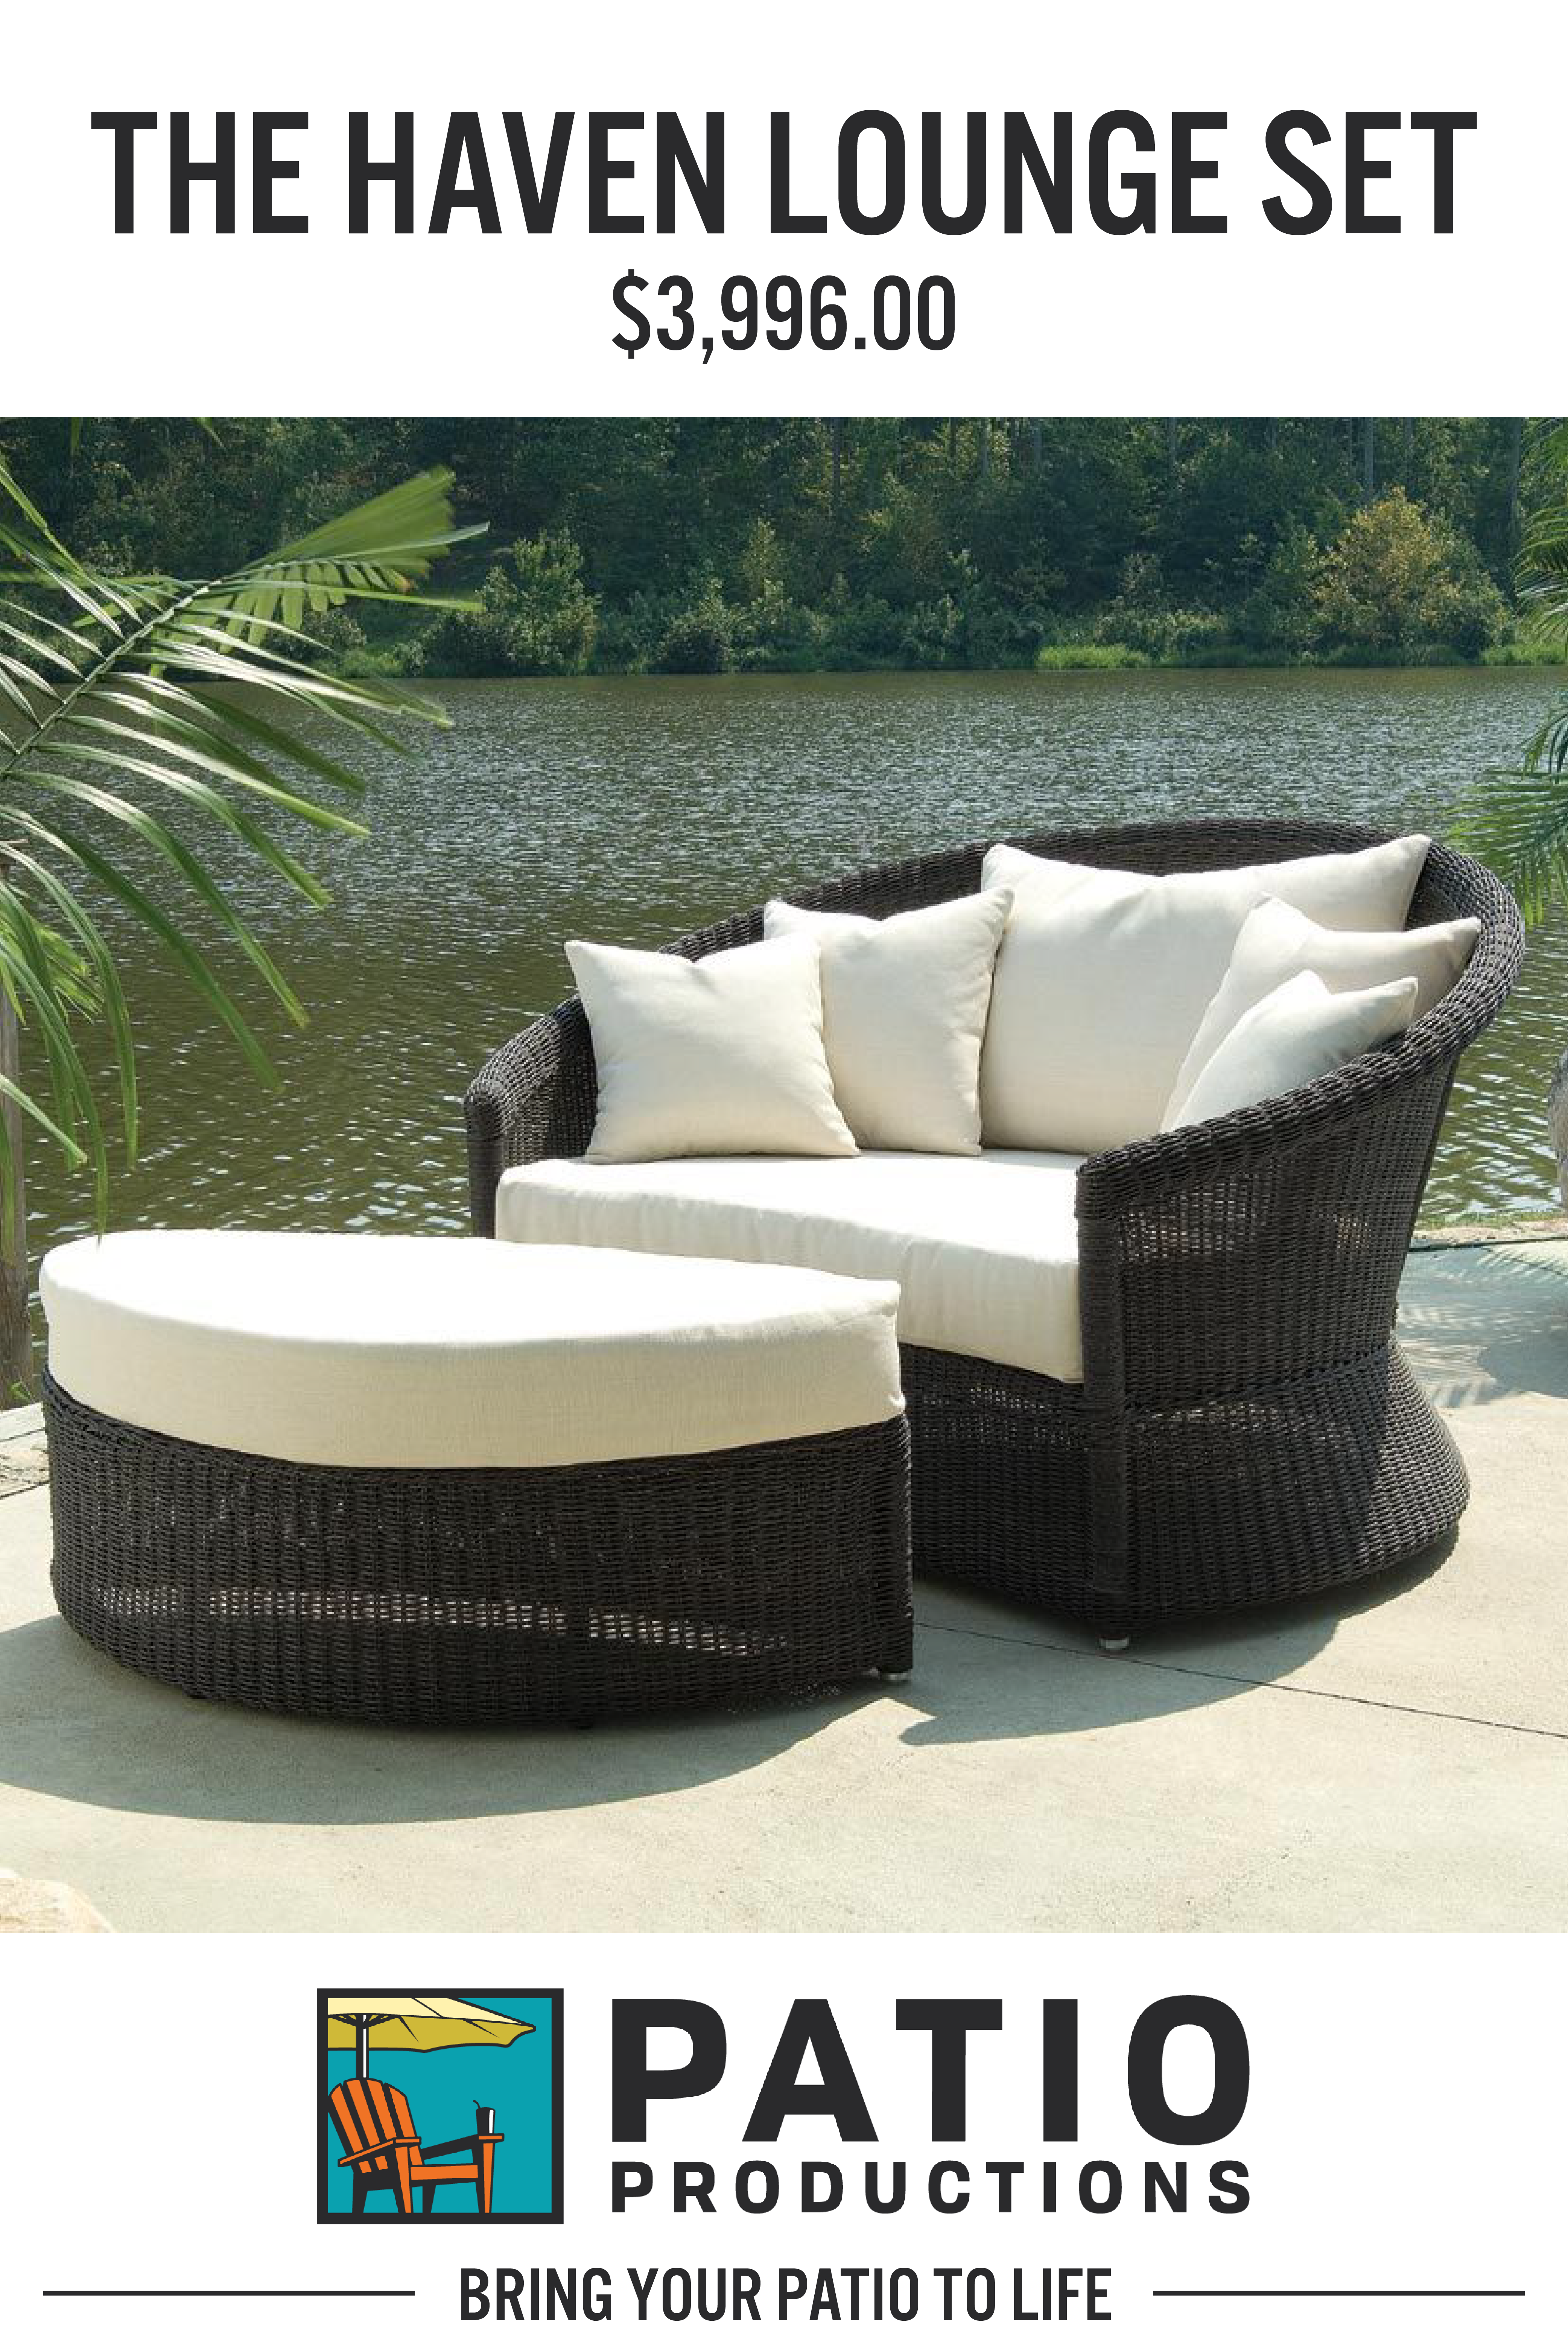 outdoor patio furniture cushions clearance on pin by diana perez on decoracion apto clearance patio furniture outdoor cushions patio furniture outdoor furniture covers pin by diana perez on decoracion apto clearance patio furniture outdoor cushions patio furniture outdoor furniture covers